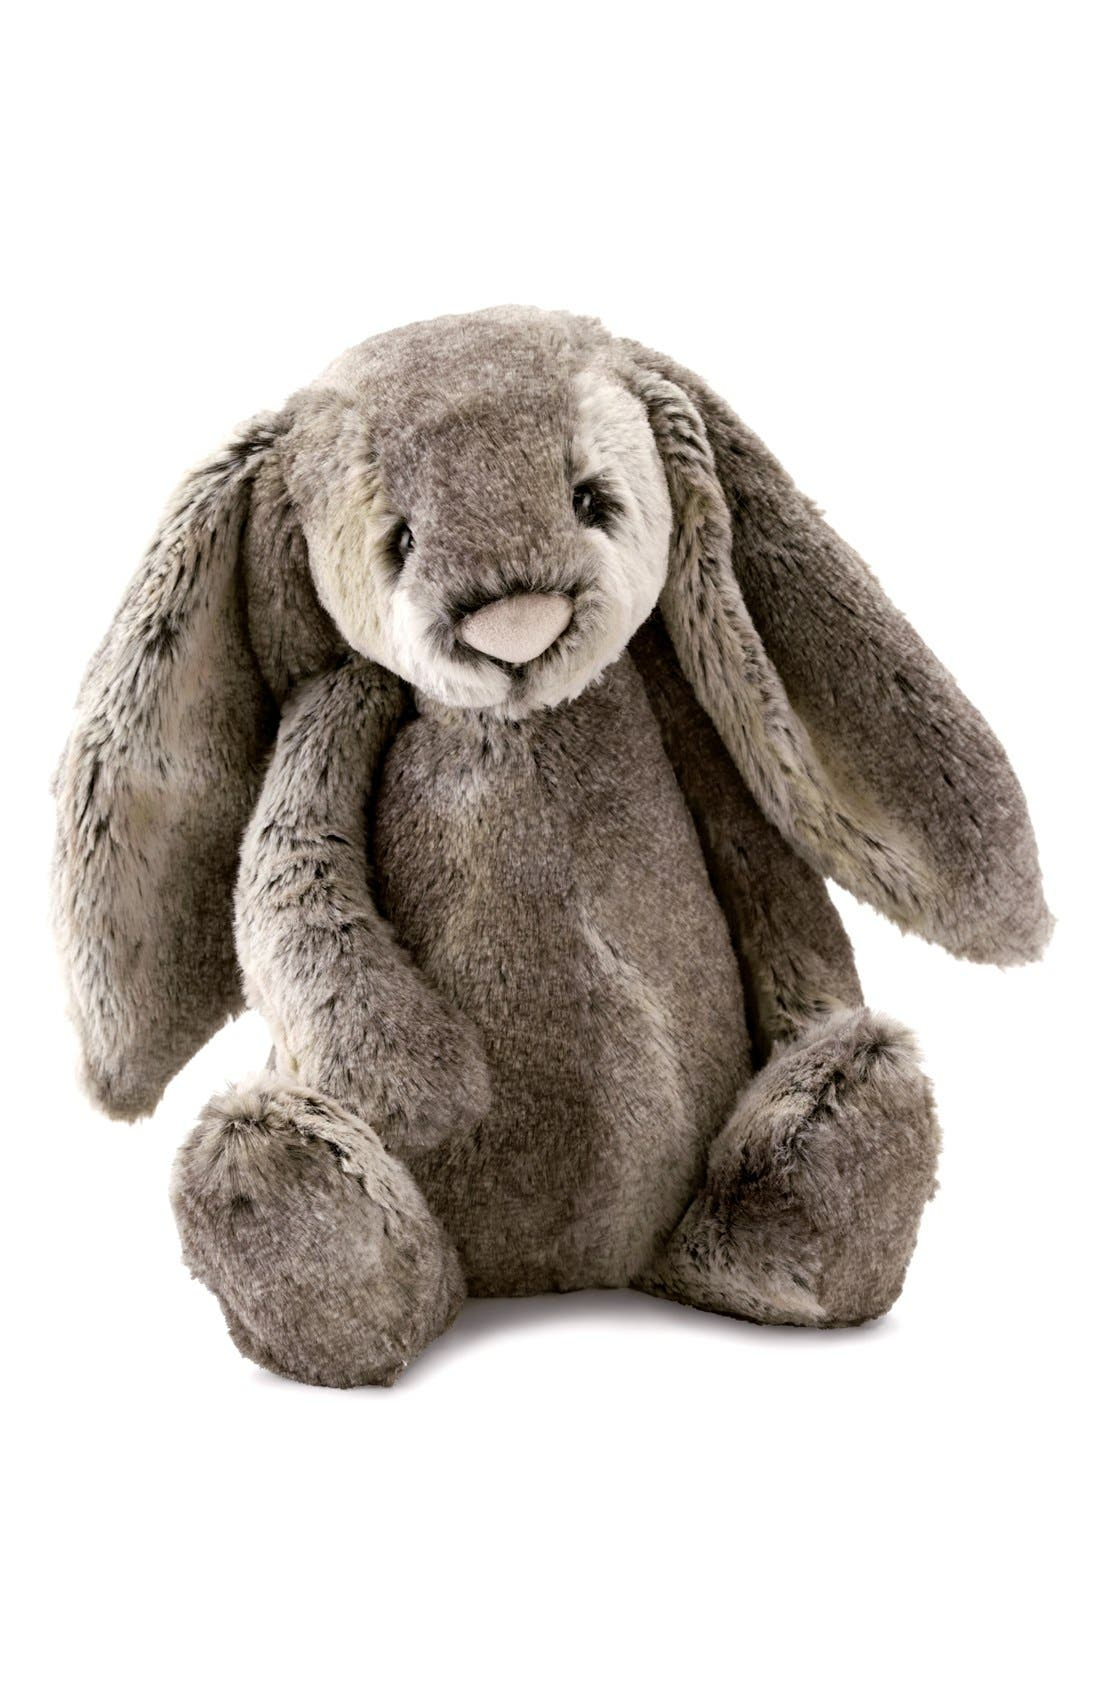 Alternate Image 1 Selected - Jellycat 'Huge Woodland Bunny' Stuffed Animal